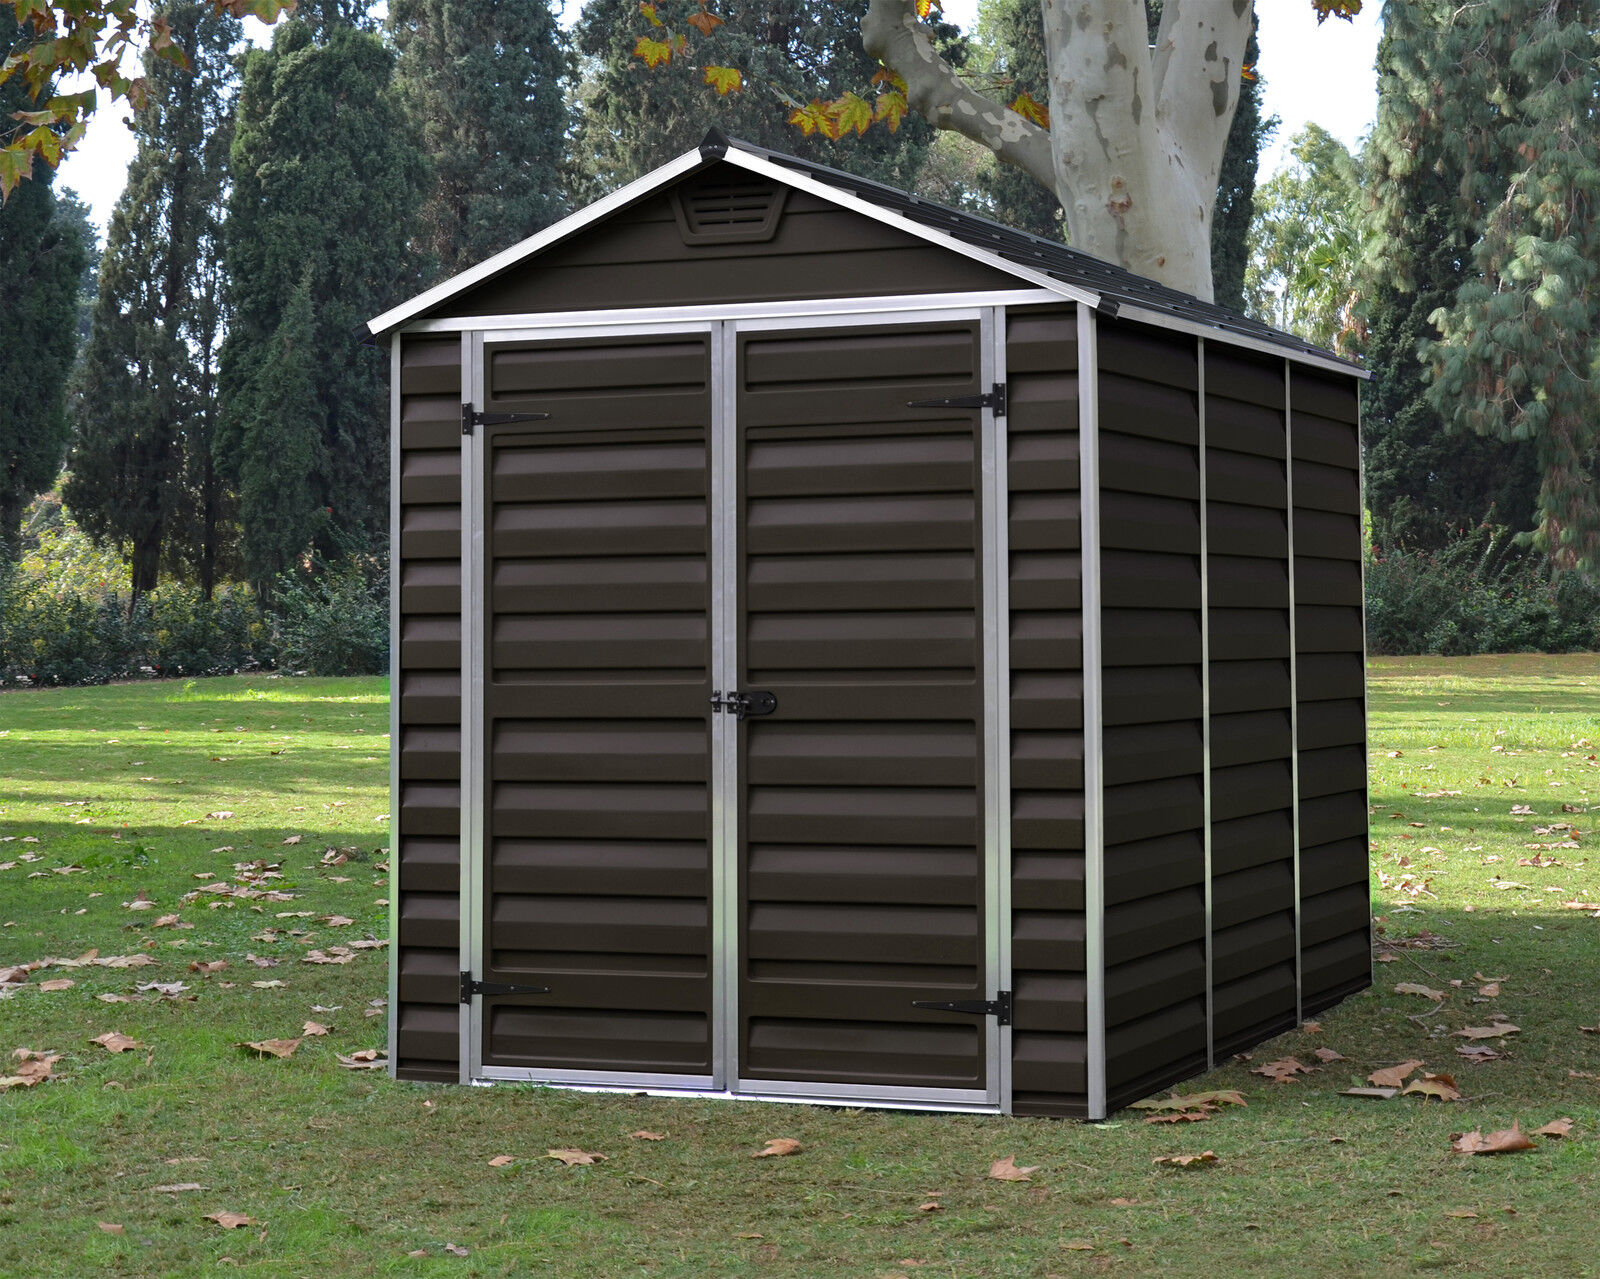 Palram skylight garden shed new dark brown in 6 sizes with for Garden shed sizes